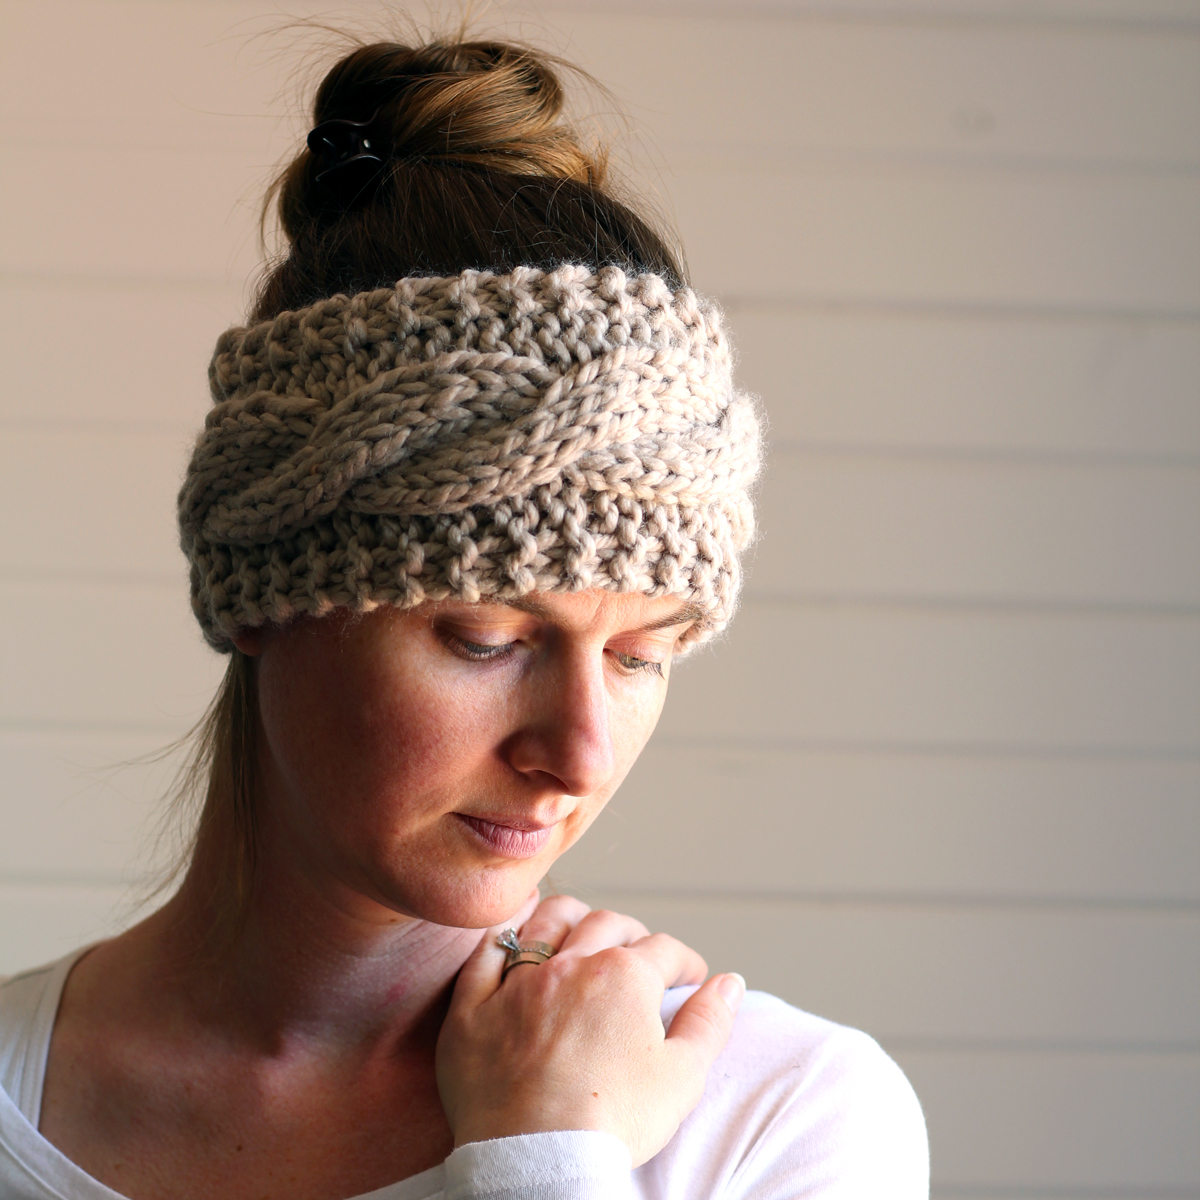 Knit Headband Pattern With Flower Friendship Headband Knitting Pattern